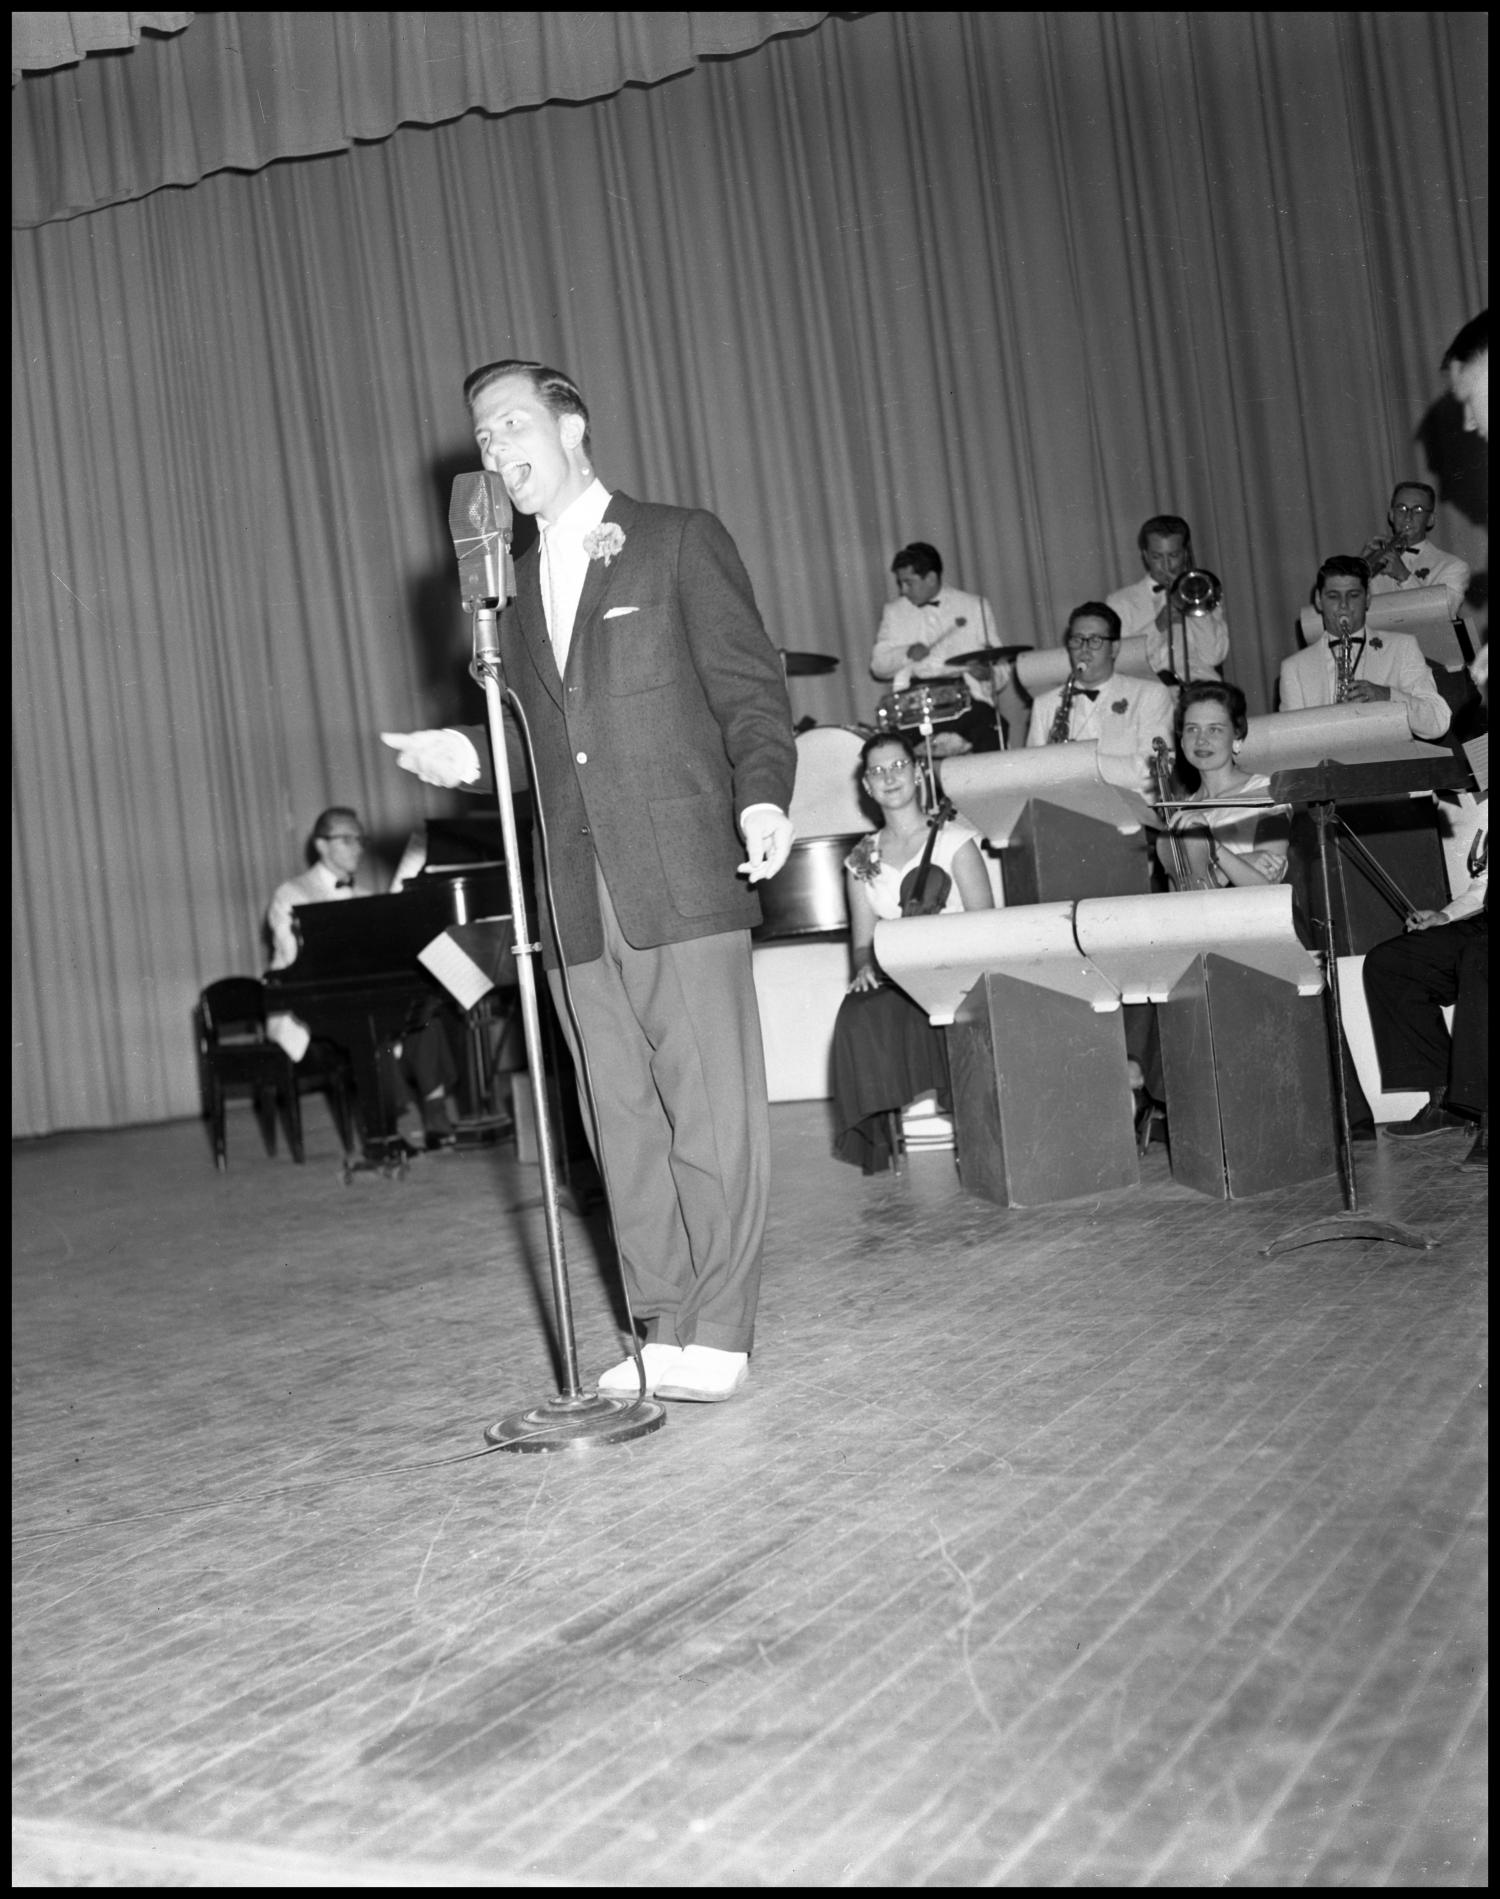 Black and white photograph of a white man in a suit singing into a microphone with a big band behind him.